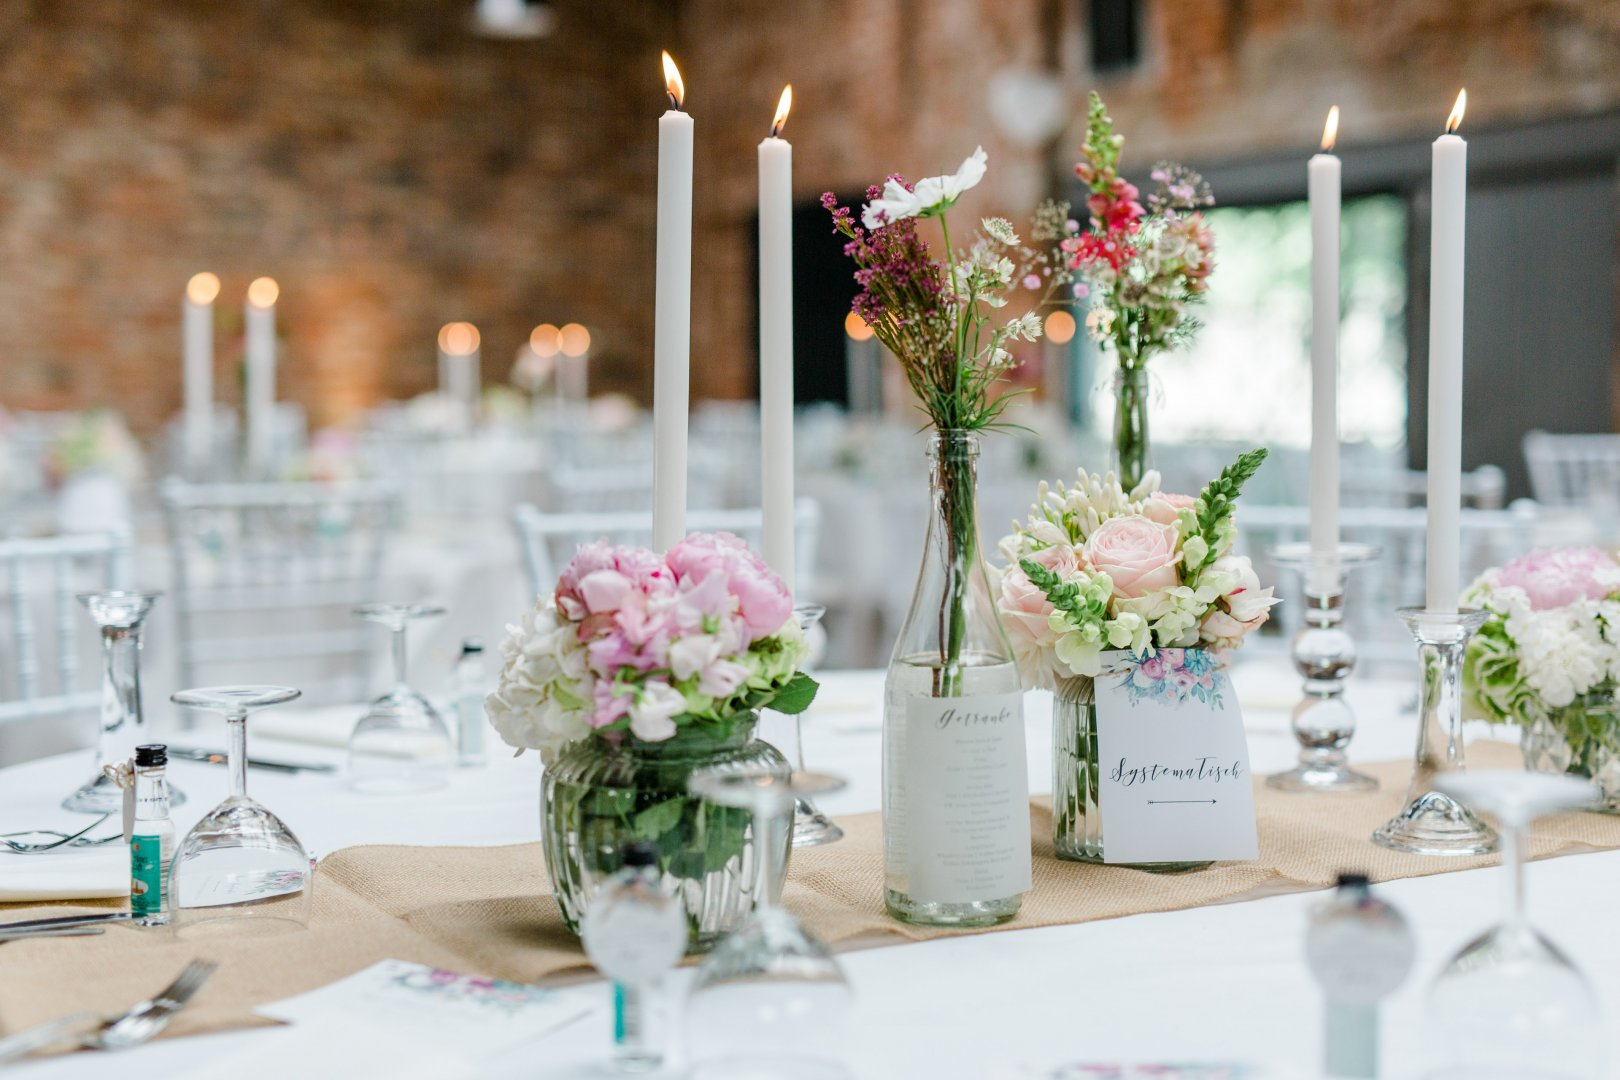 Decoration Centrepiece Flower Arranging Wedding banquet Flower Floristry Floral design Rehearsal dinner Pink Tableware Wedding reception Plant Candle Cut flowers Table Event Bouquet Interior design Artificial flower Party Room Function hall Banquet Ceremony Vase Interior design